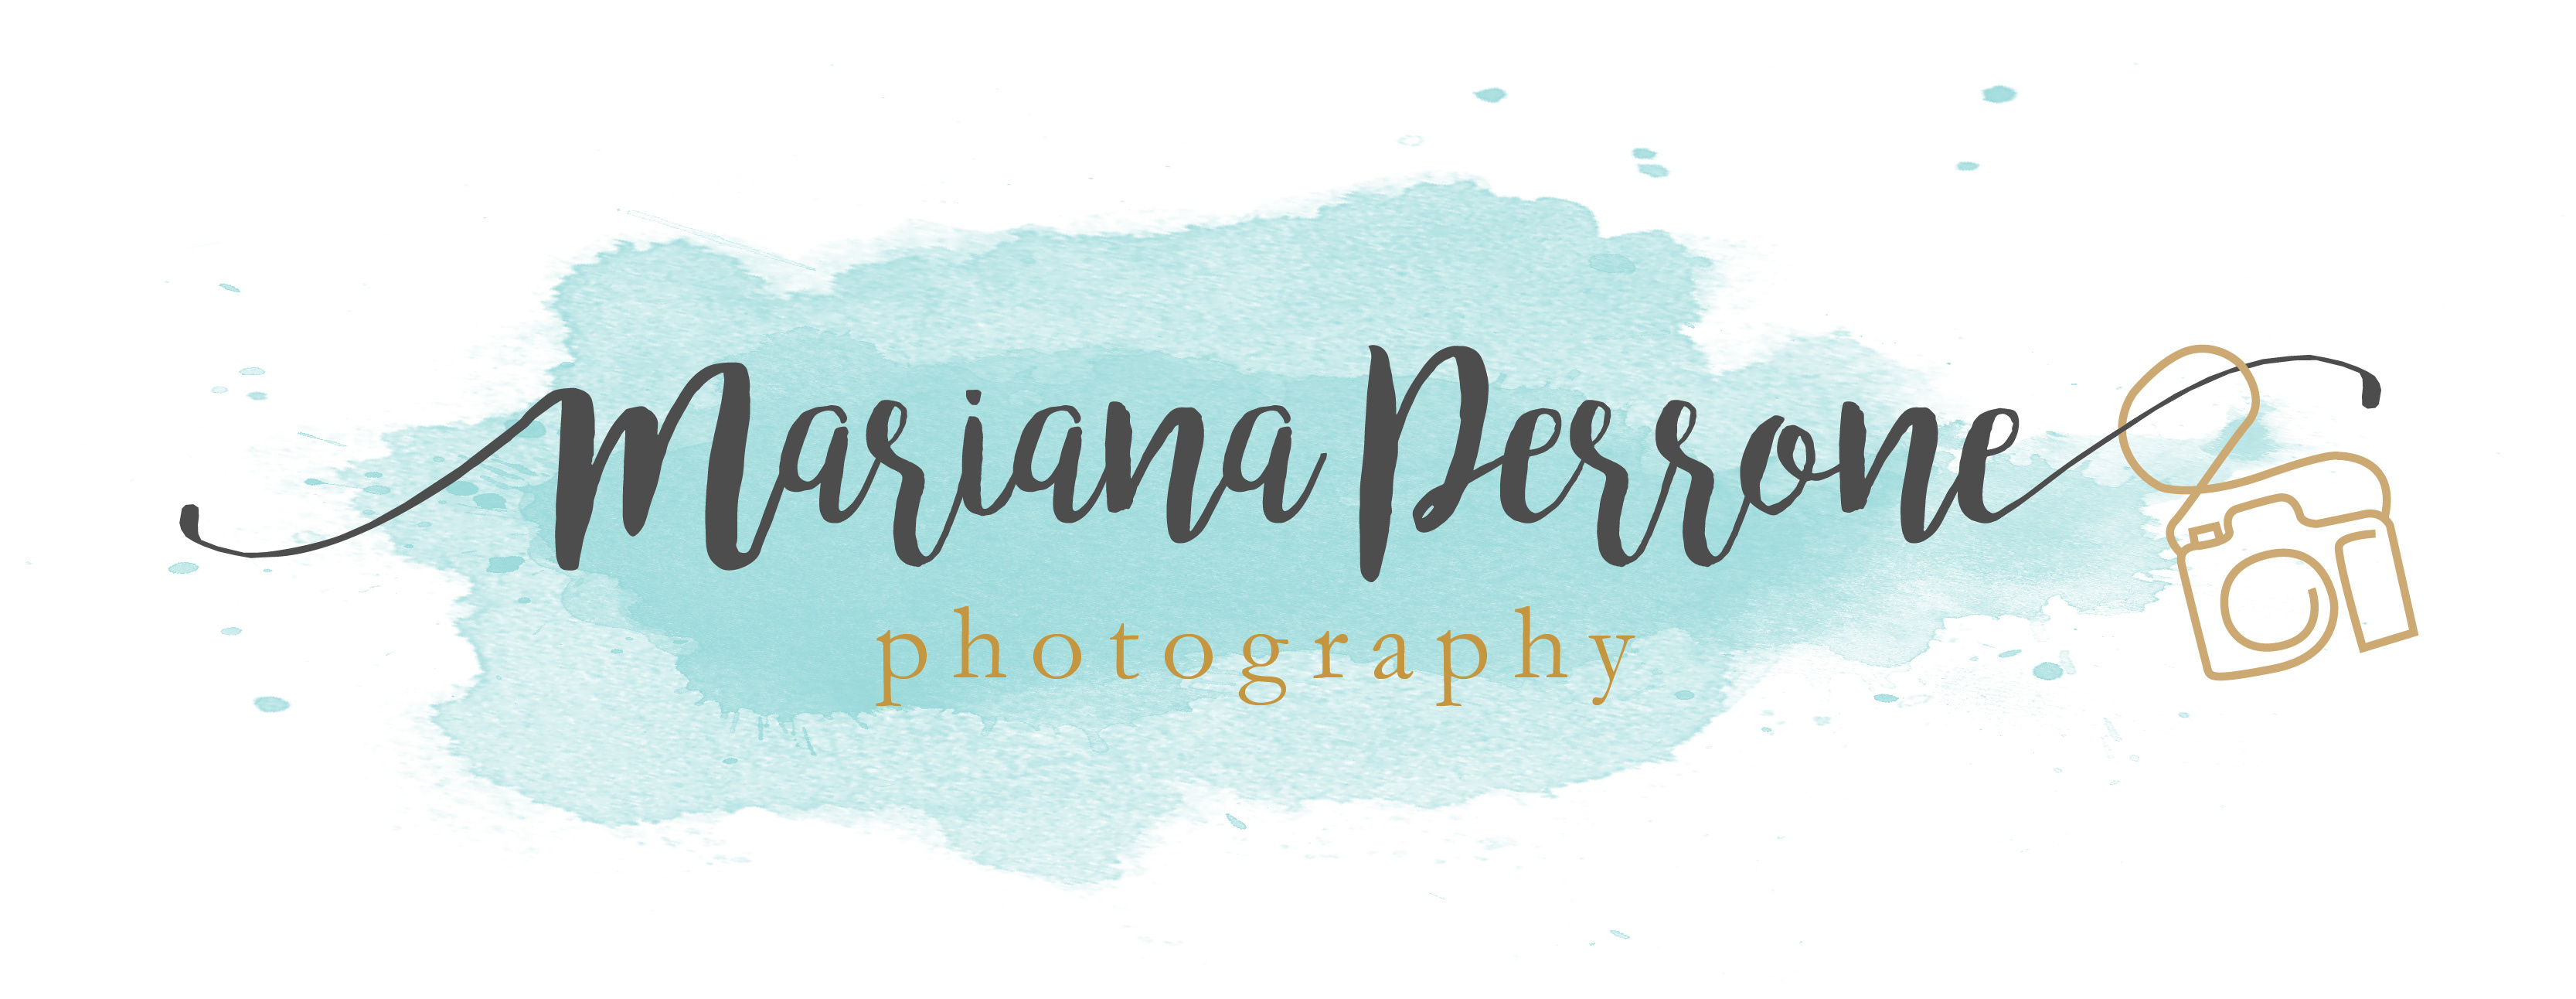 Mariana Perrone Photography